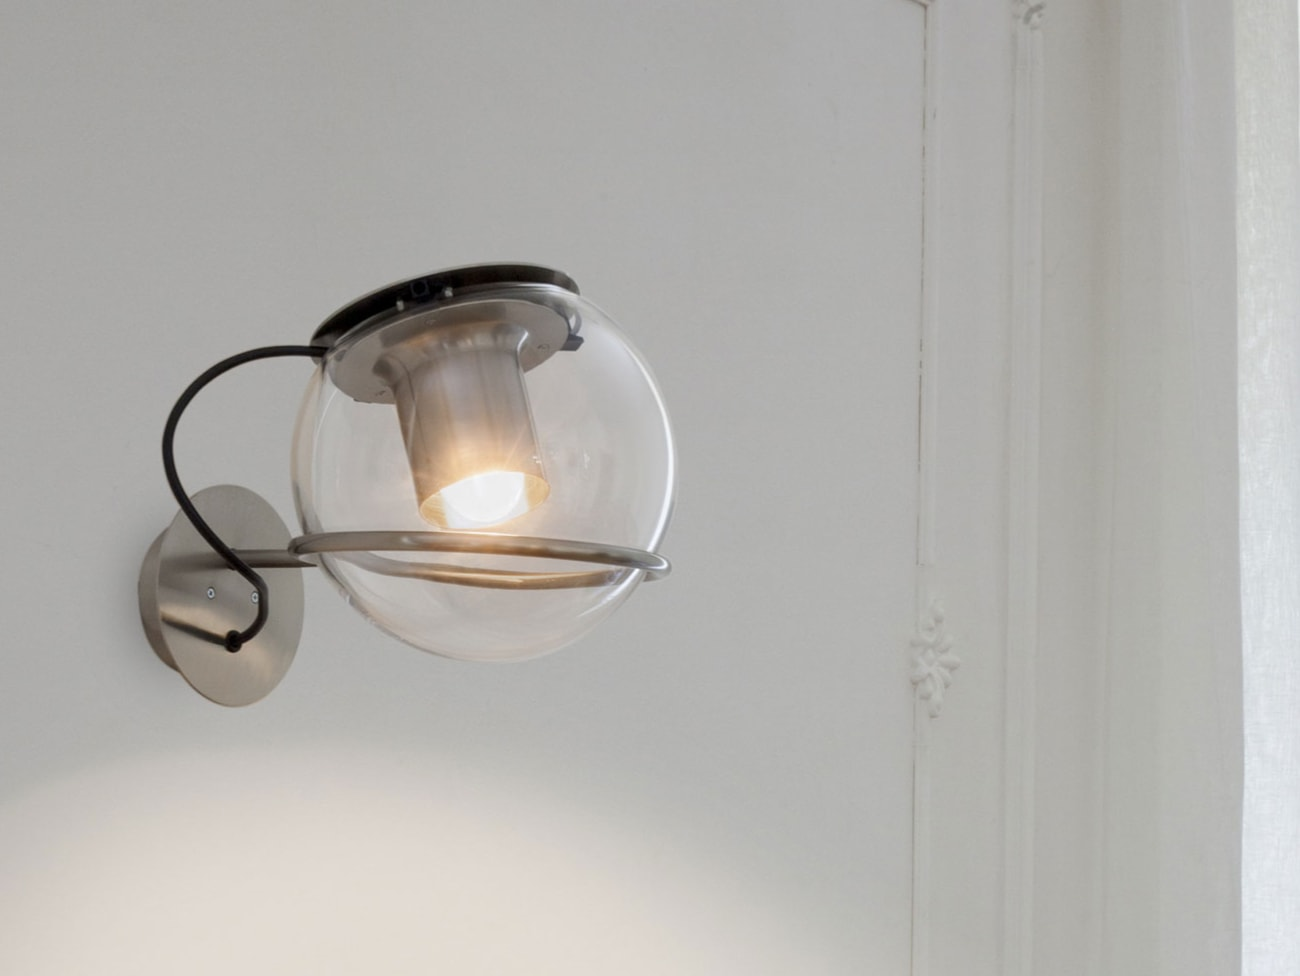 The Globe Wall Lamp